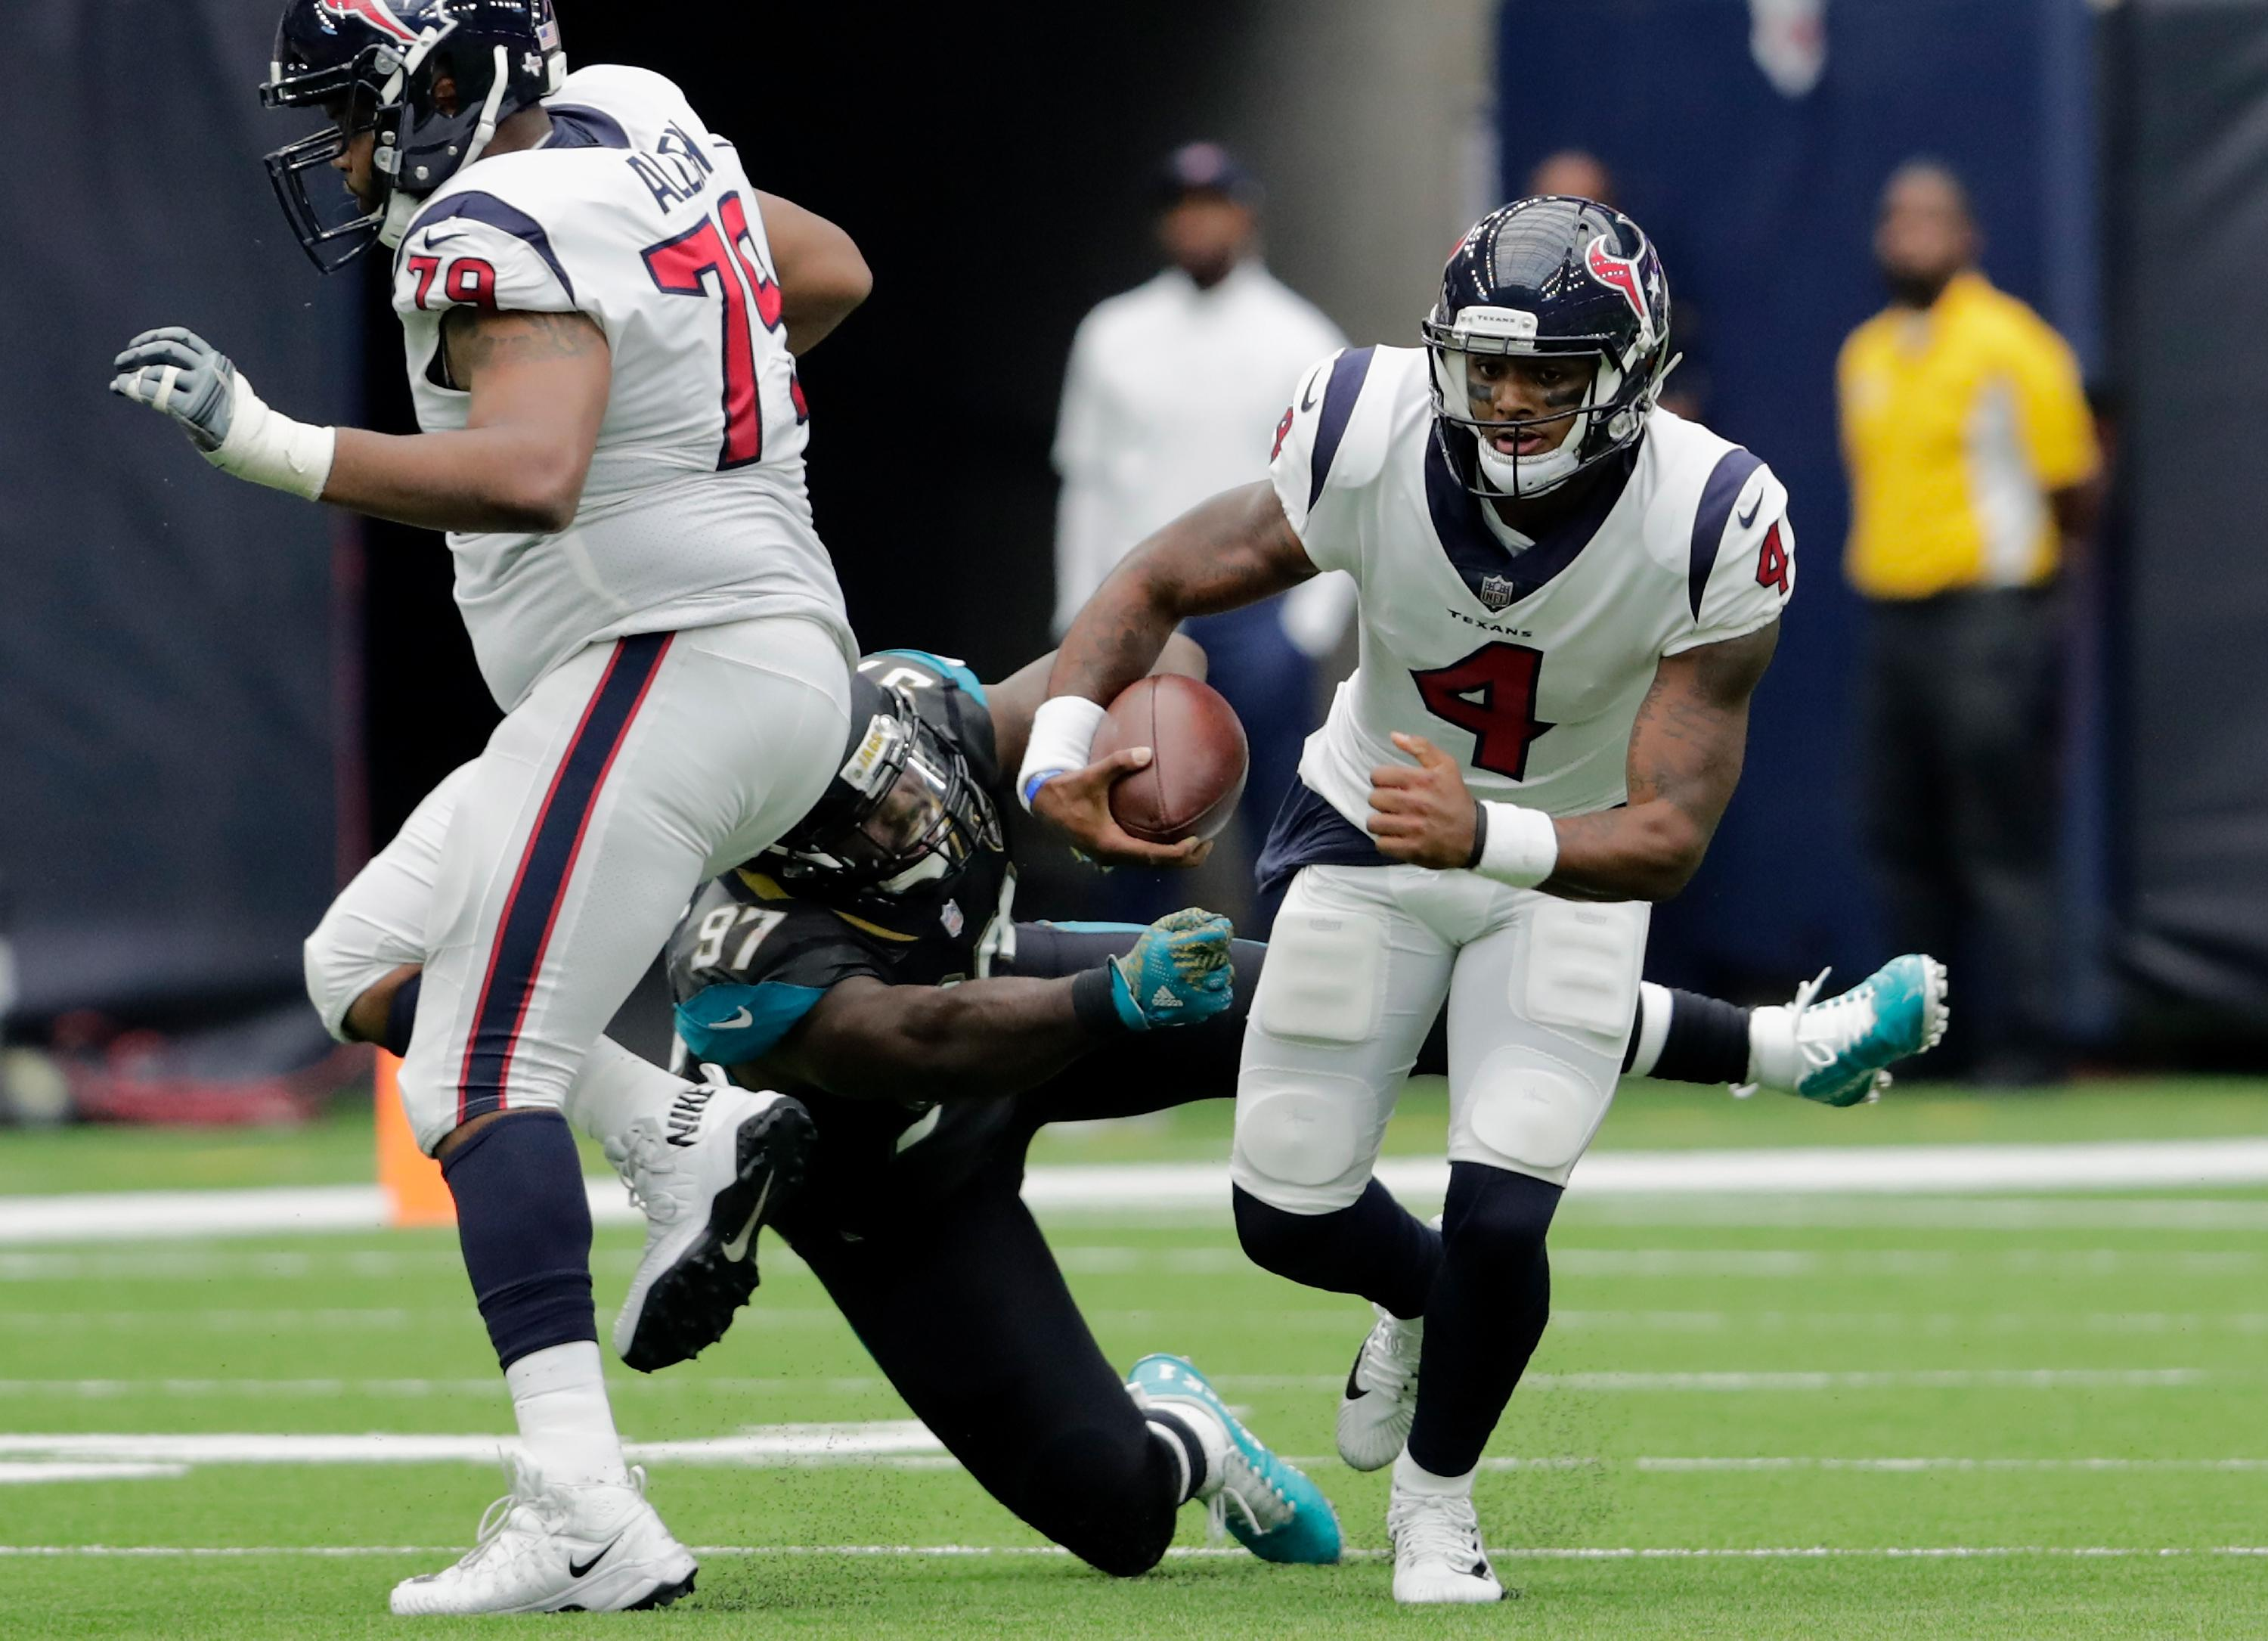 No word yet on Texans QB, and they've got other problems